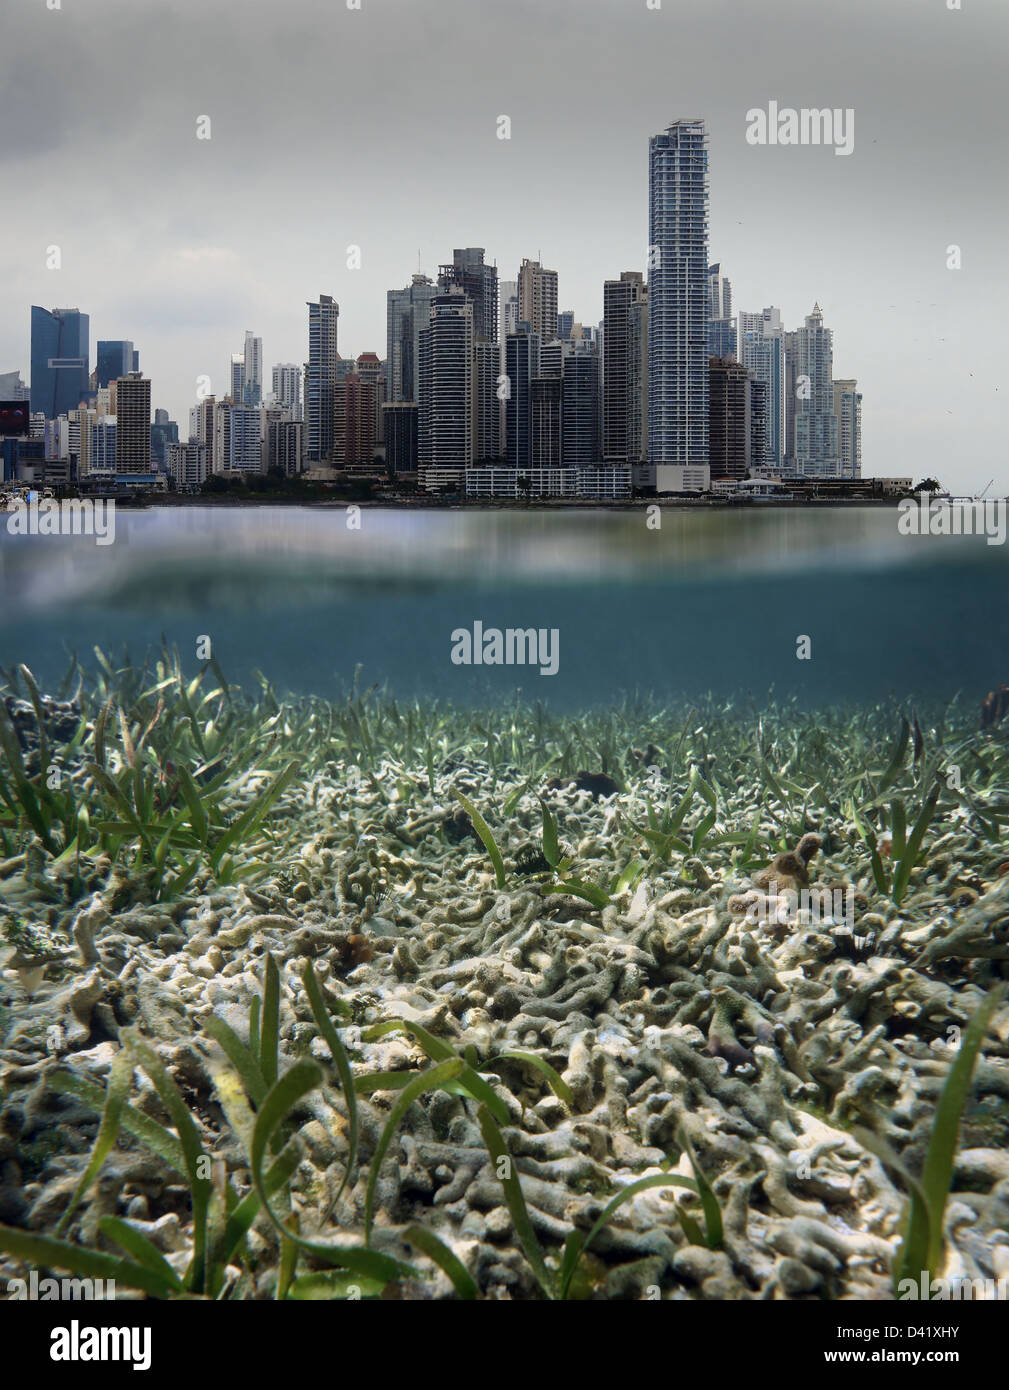 Coral reef destroyed by coastal development issues in Panama - Stock Image